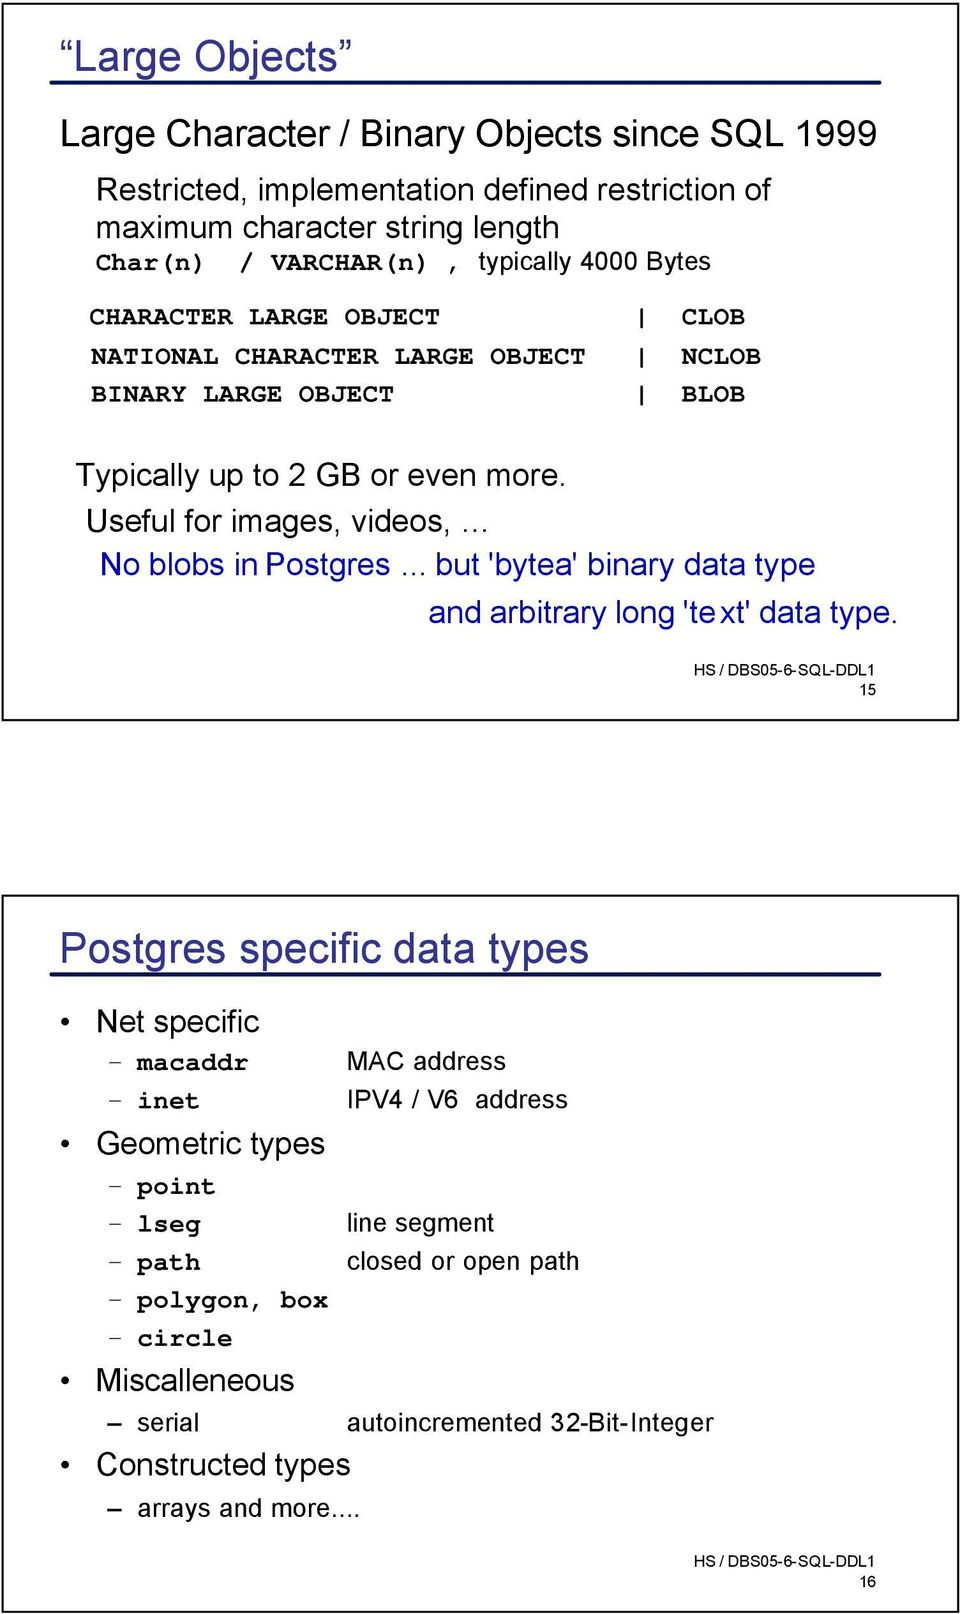 Useful for images, videos, No blobs in Postgres... but 'bytea' binary data type and arbitrary long 'text' data type.